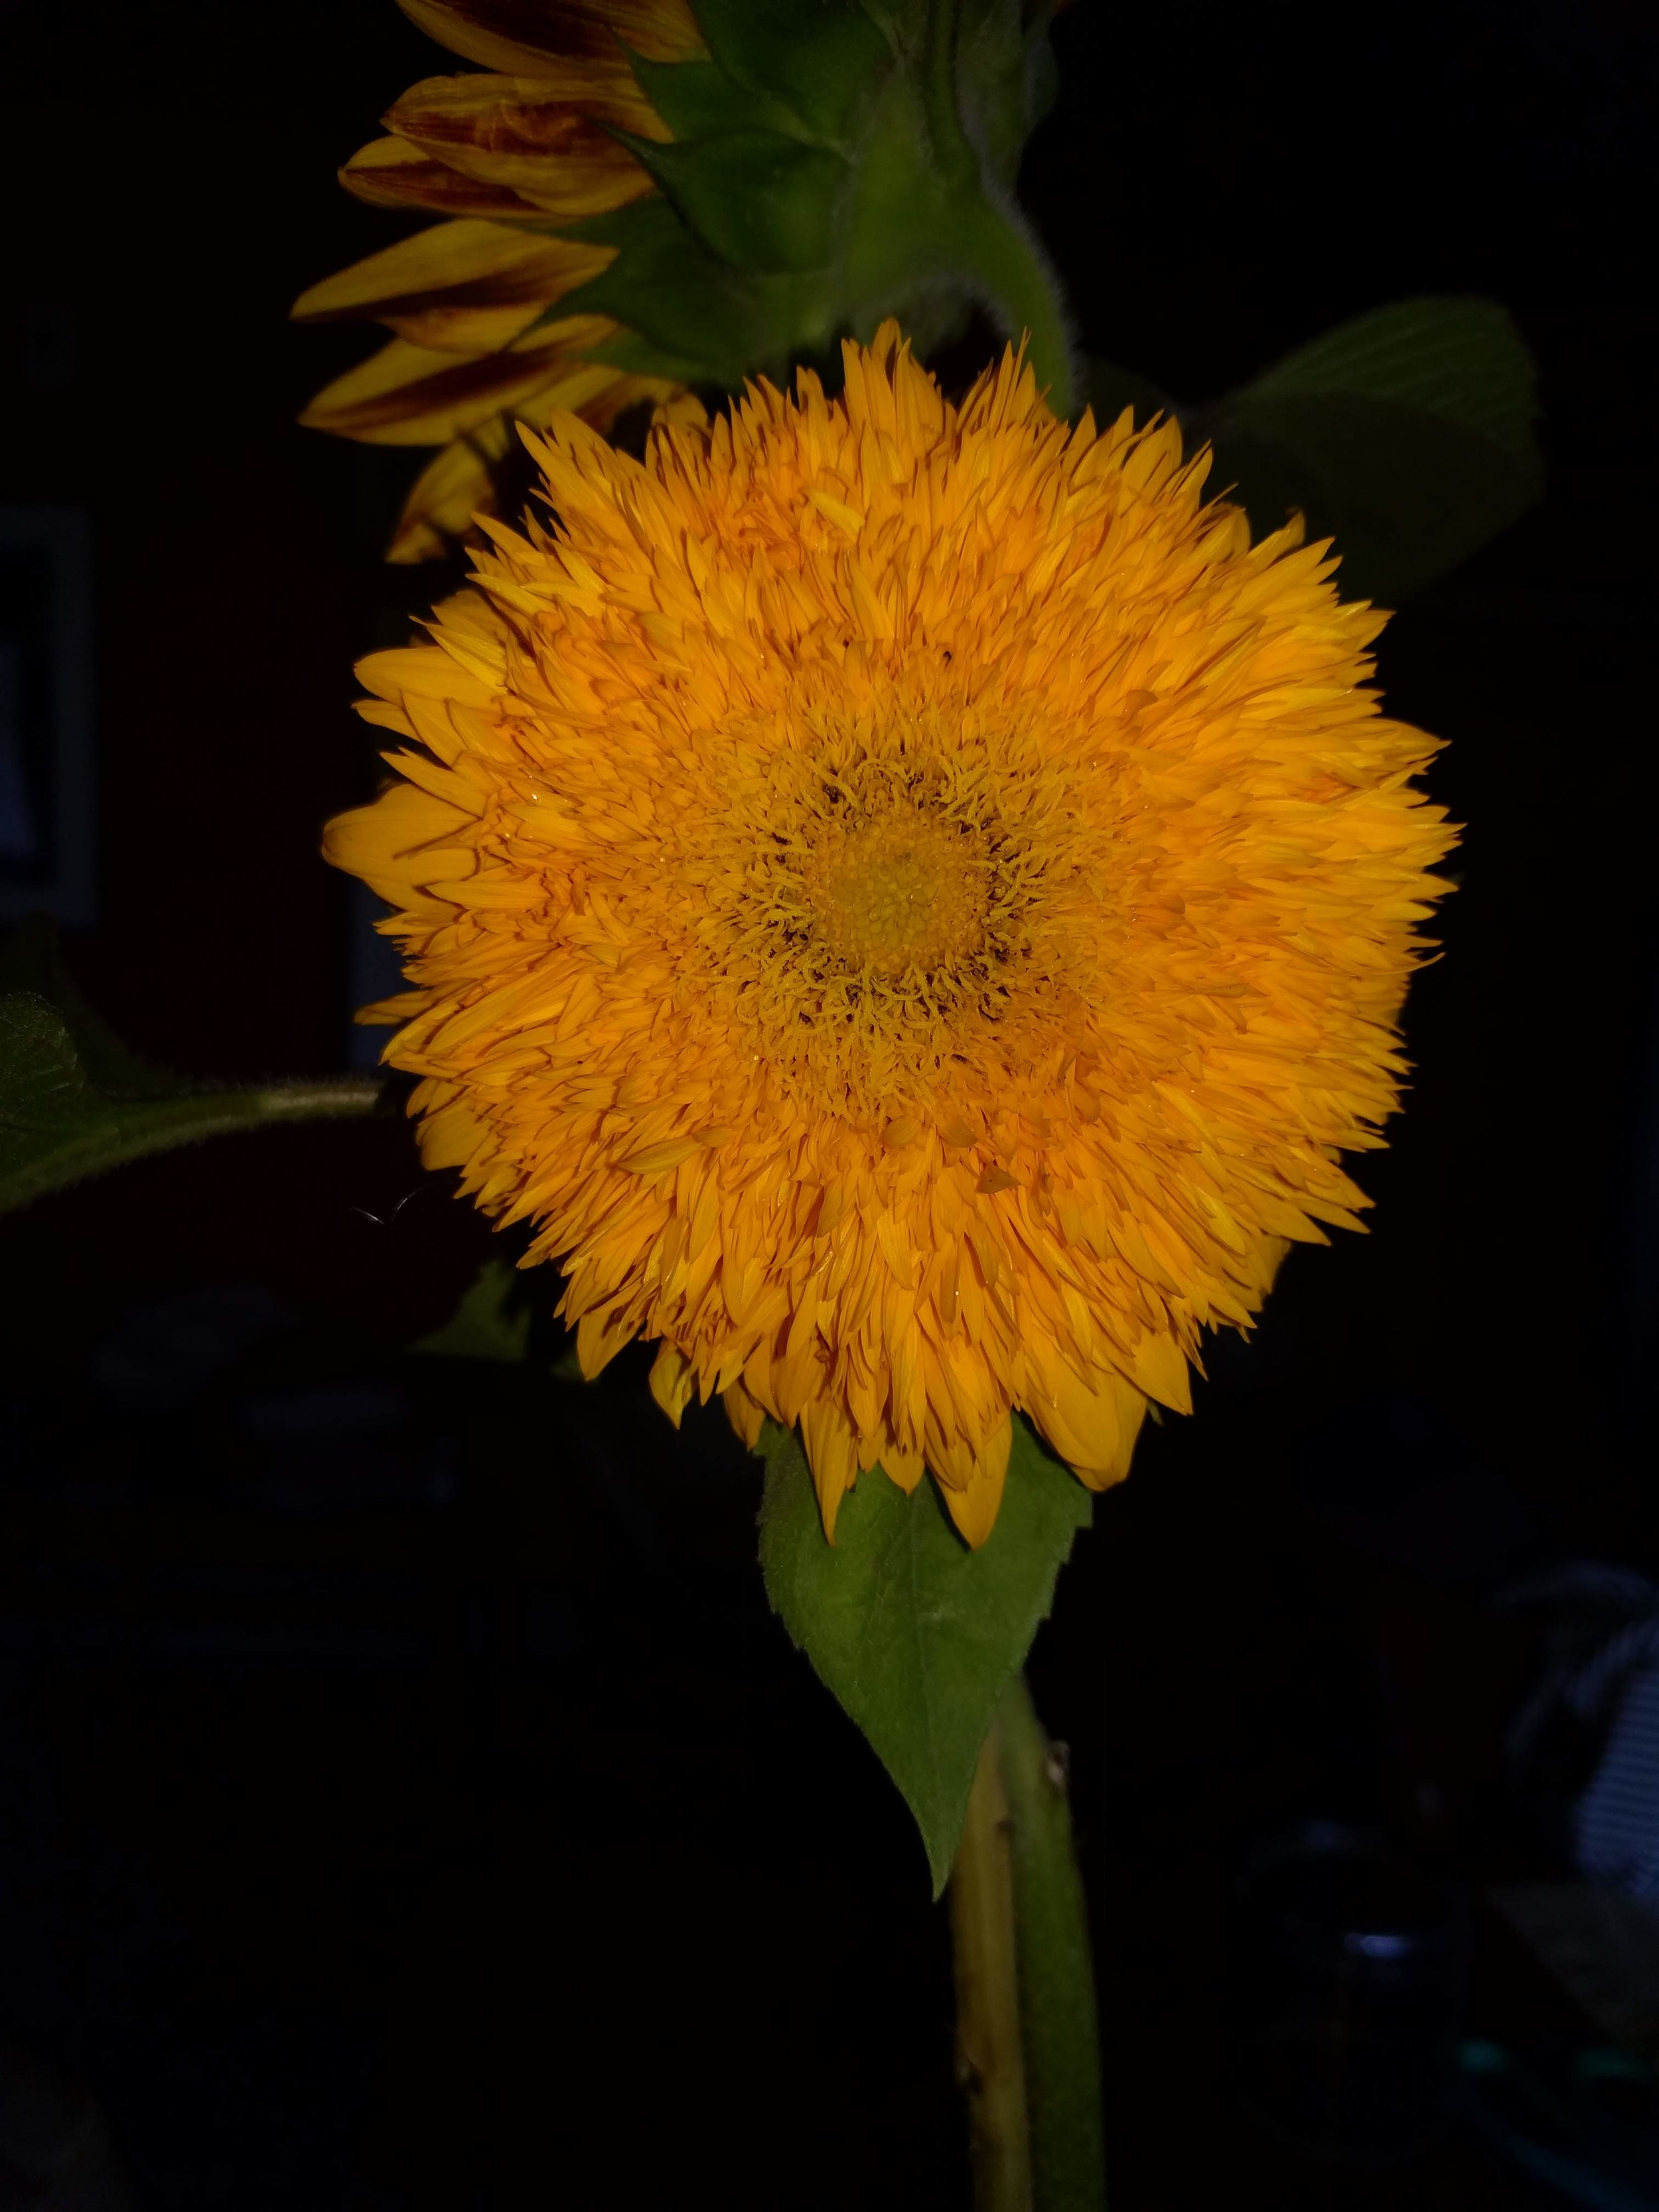 My favorite sunflower, Teddy Bear. All of my favorite flowers have a dense petal pack.